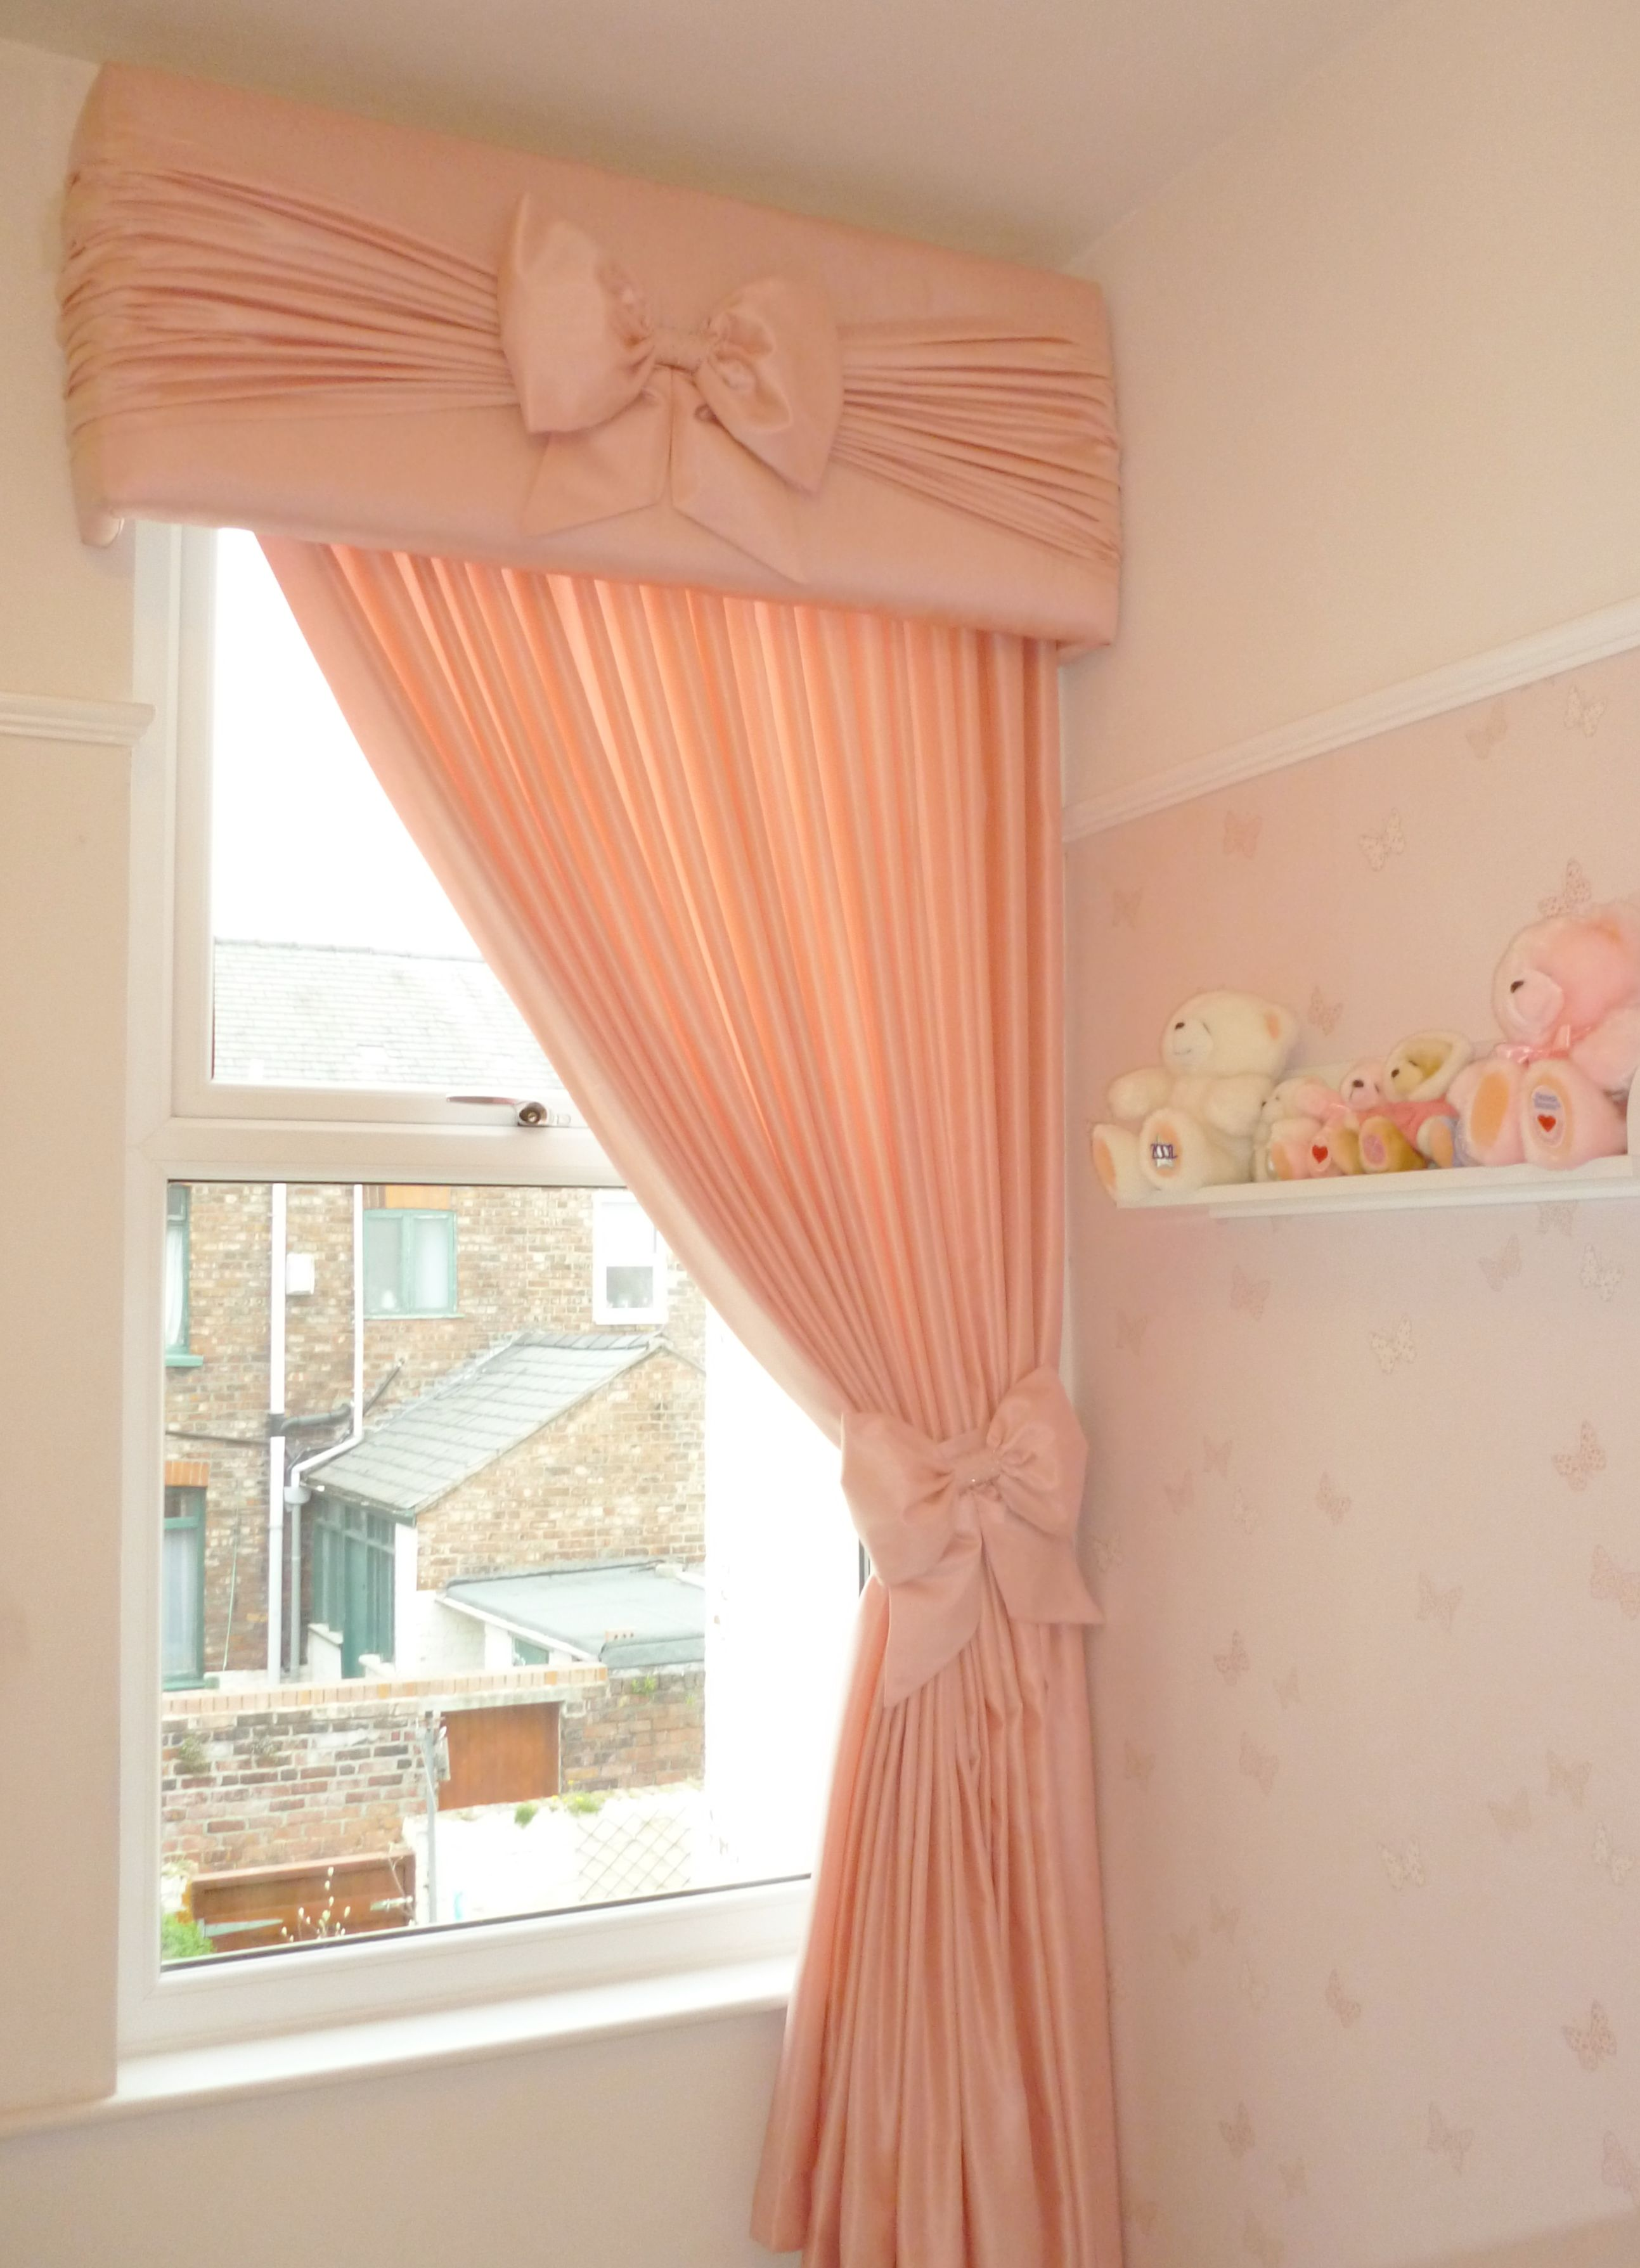 white black room girly bedroom offers lovely nuance sheet cream with interior girls and rod curtain pattern cute by curtains having wall wooden combined on for bed pink